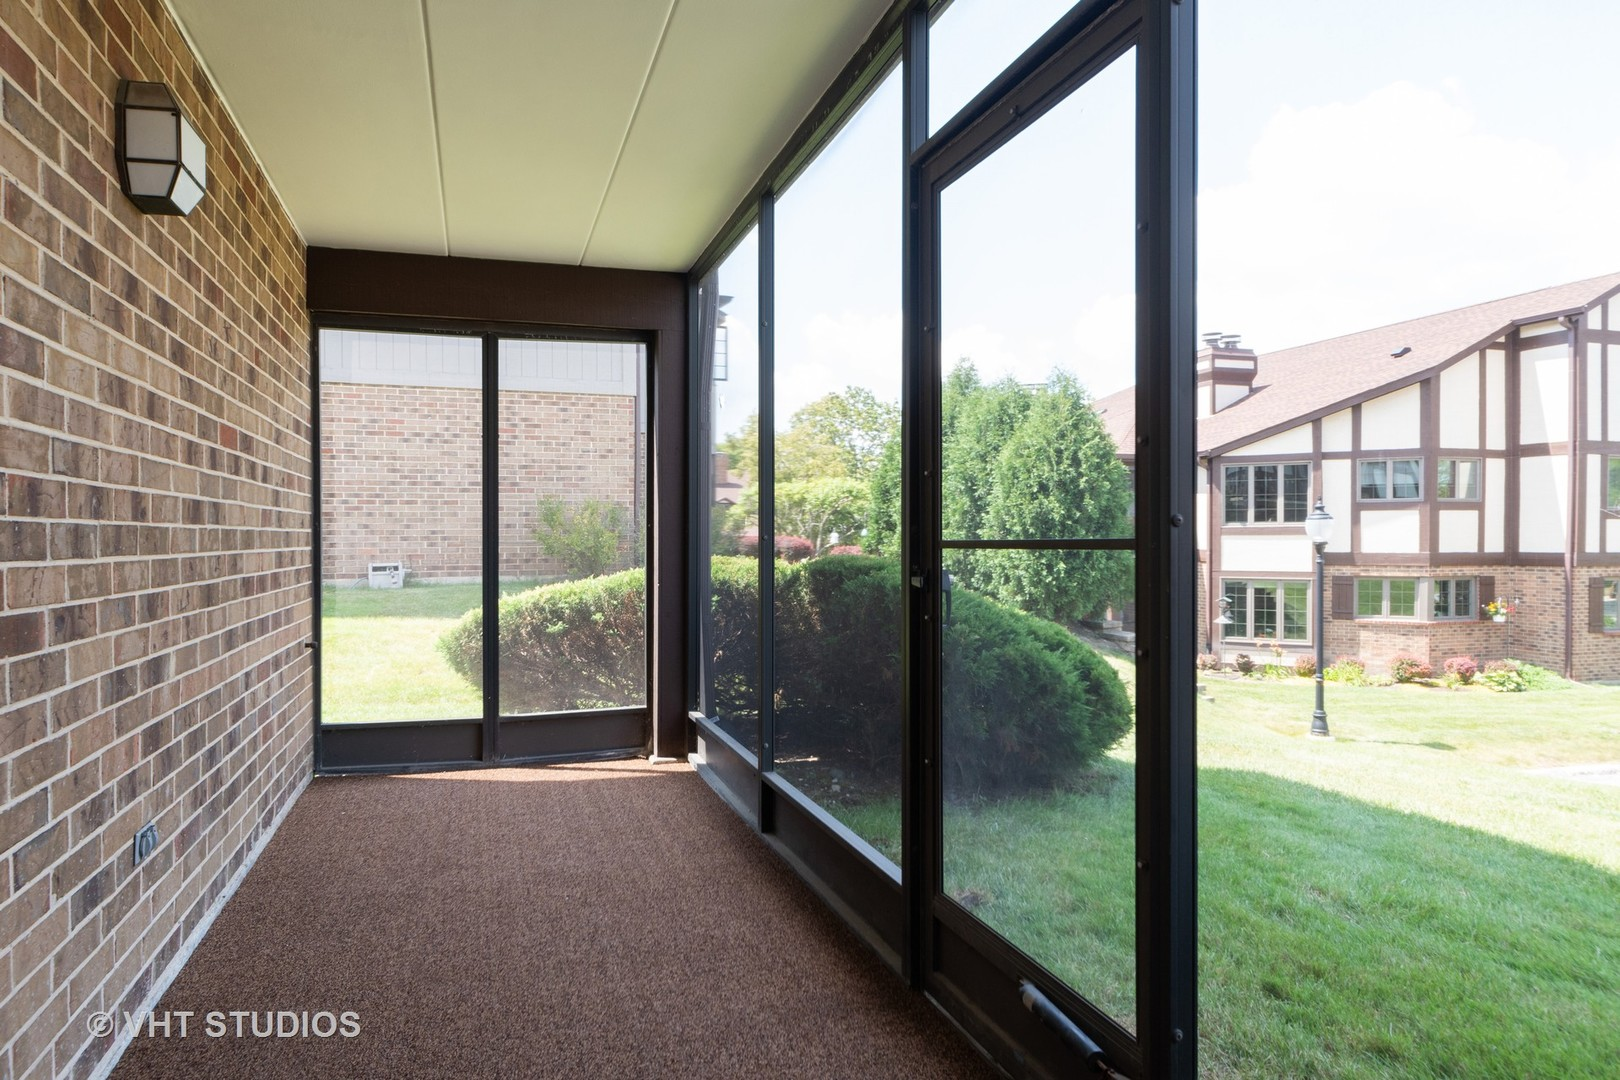 7842 West FORESTHILL 1BR, Palos Heights, Illinois, 60463